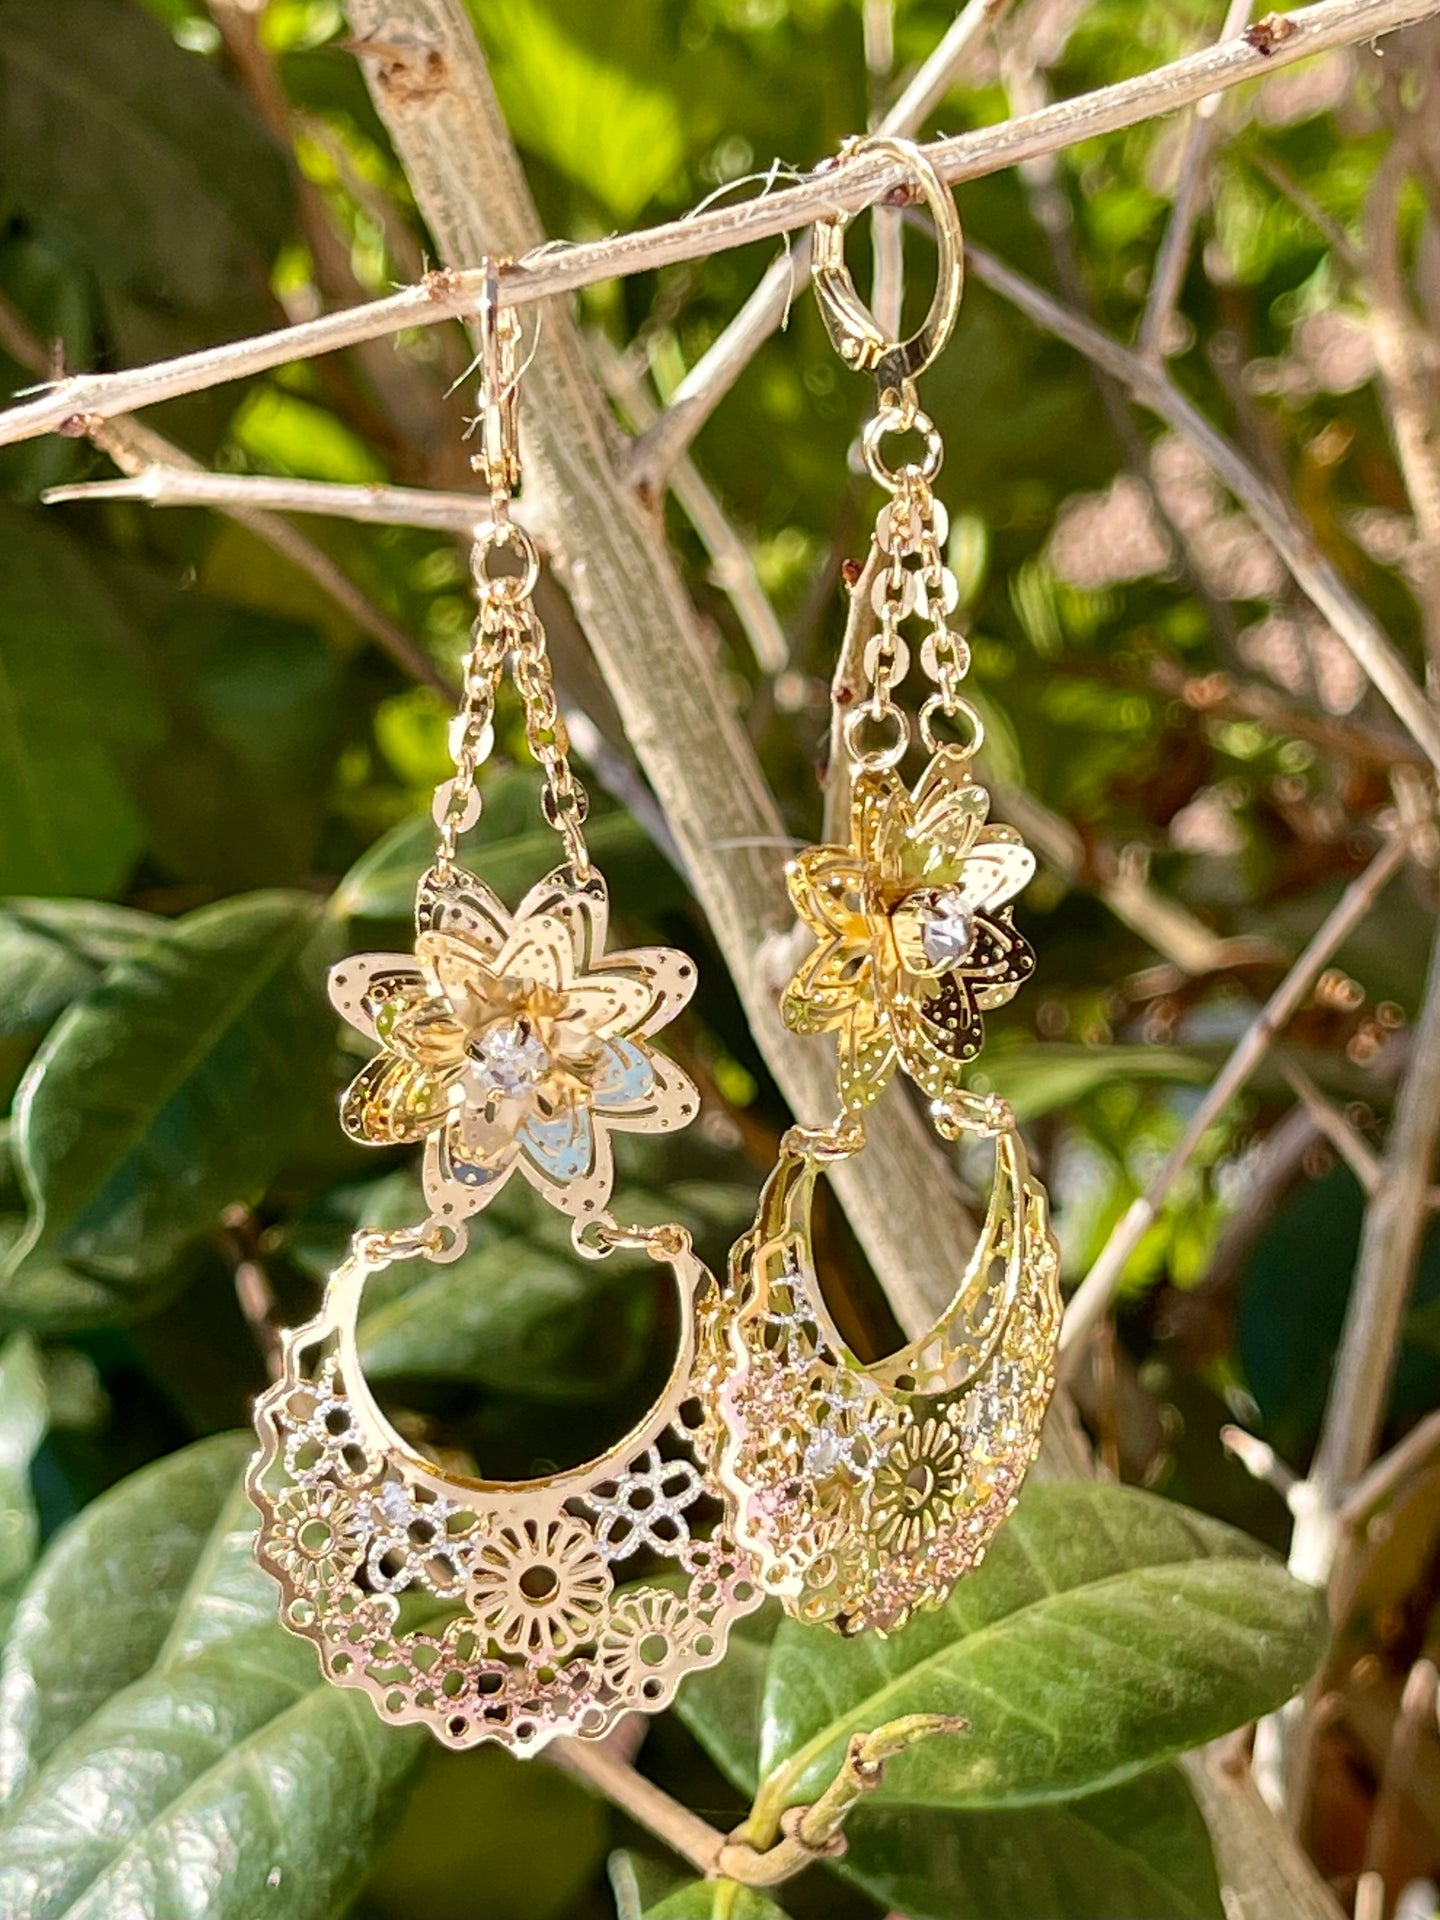 Floral chandelier style dangle earrings in tricolor 14kt gold plating